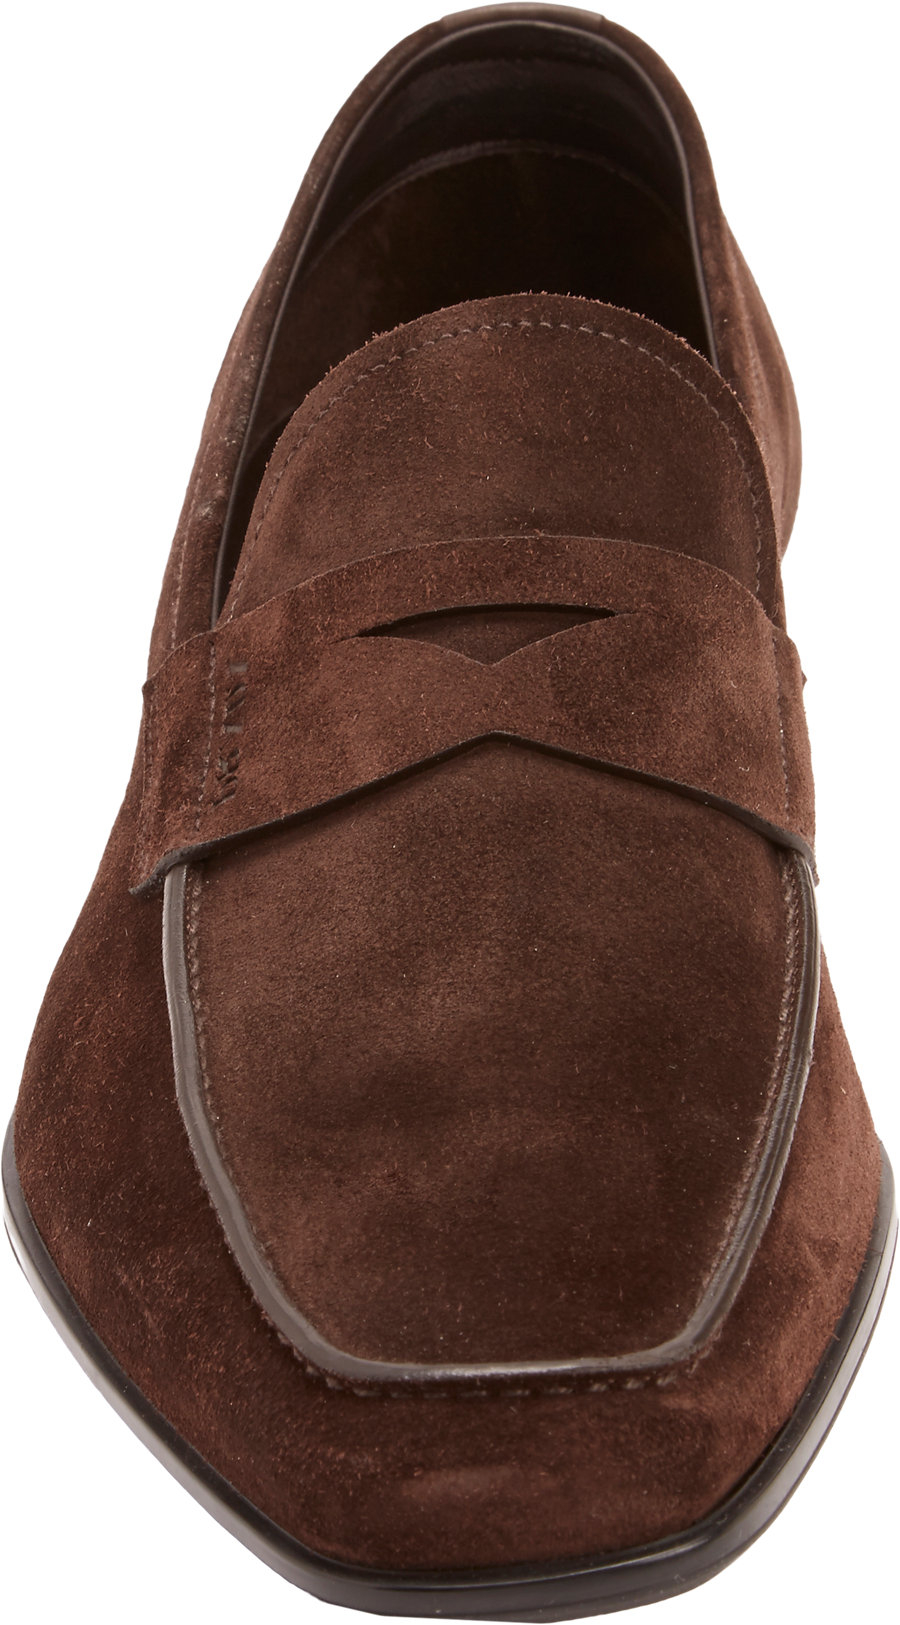 Lyst - Prada Suede Penny Loafers in Brown for Men